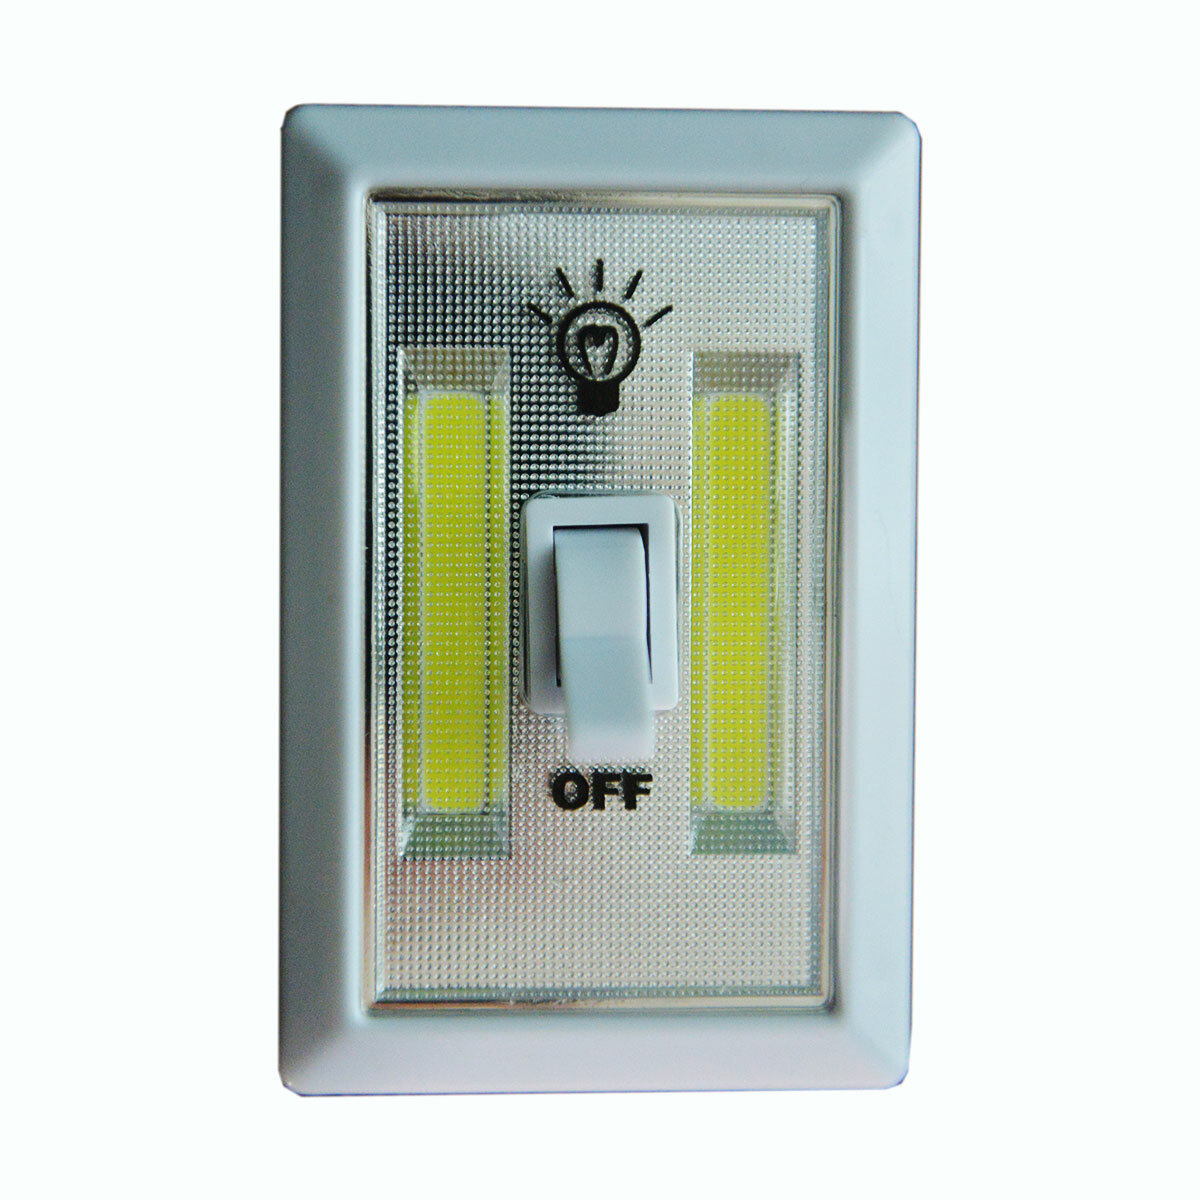 Beauty Acrylic Battery Operated Led Light Switch Wayfair Hall Effect Switchjpg